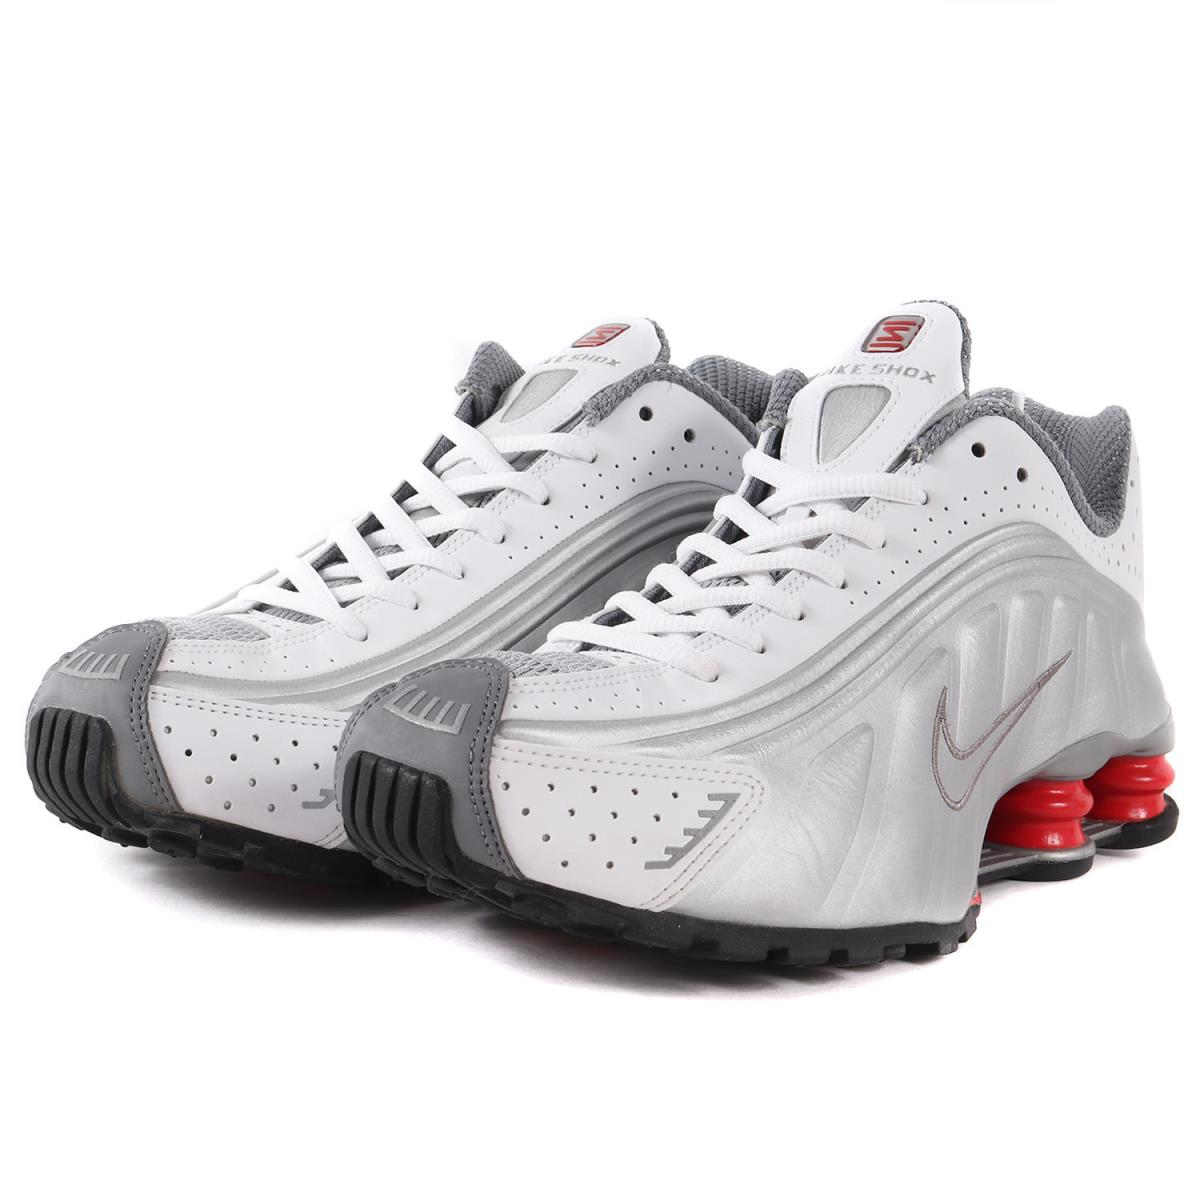 best service 8cf53 1f805 NIKE (Nike) SHOX R4 (/ BV1111-100 made in 2018) white X metallic silver  US9(27)